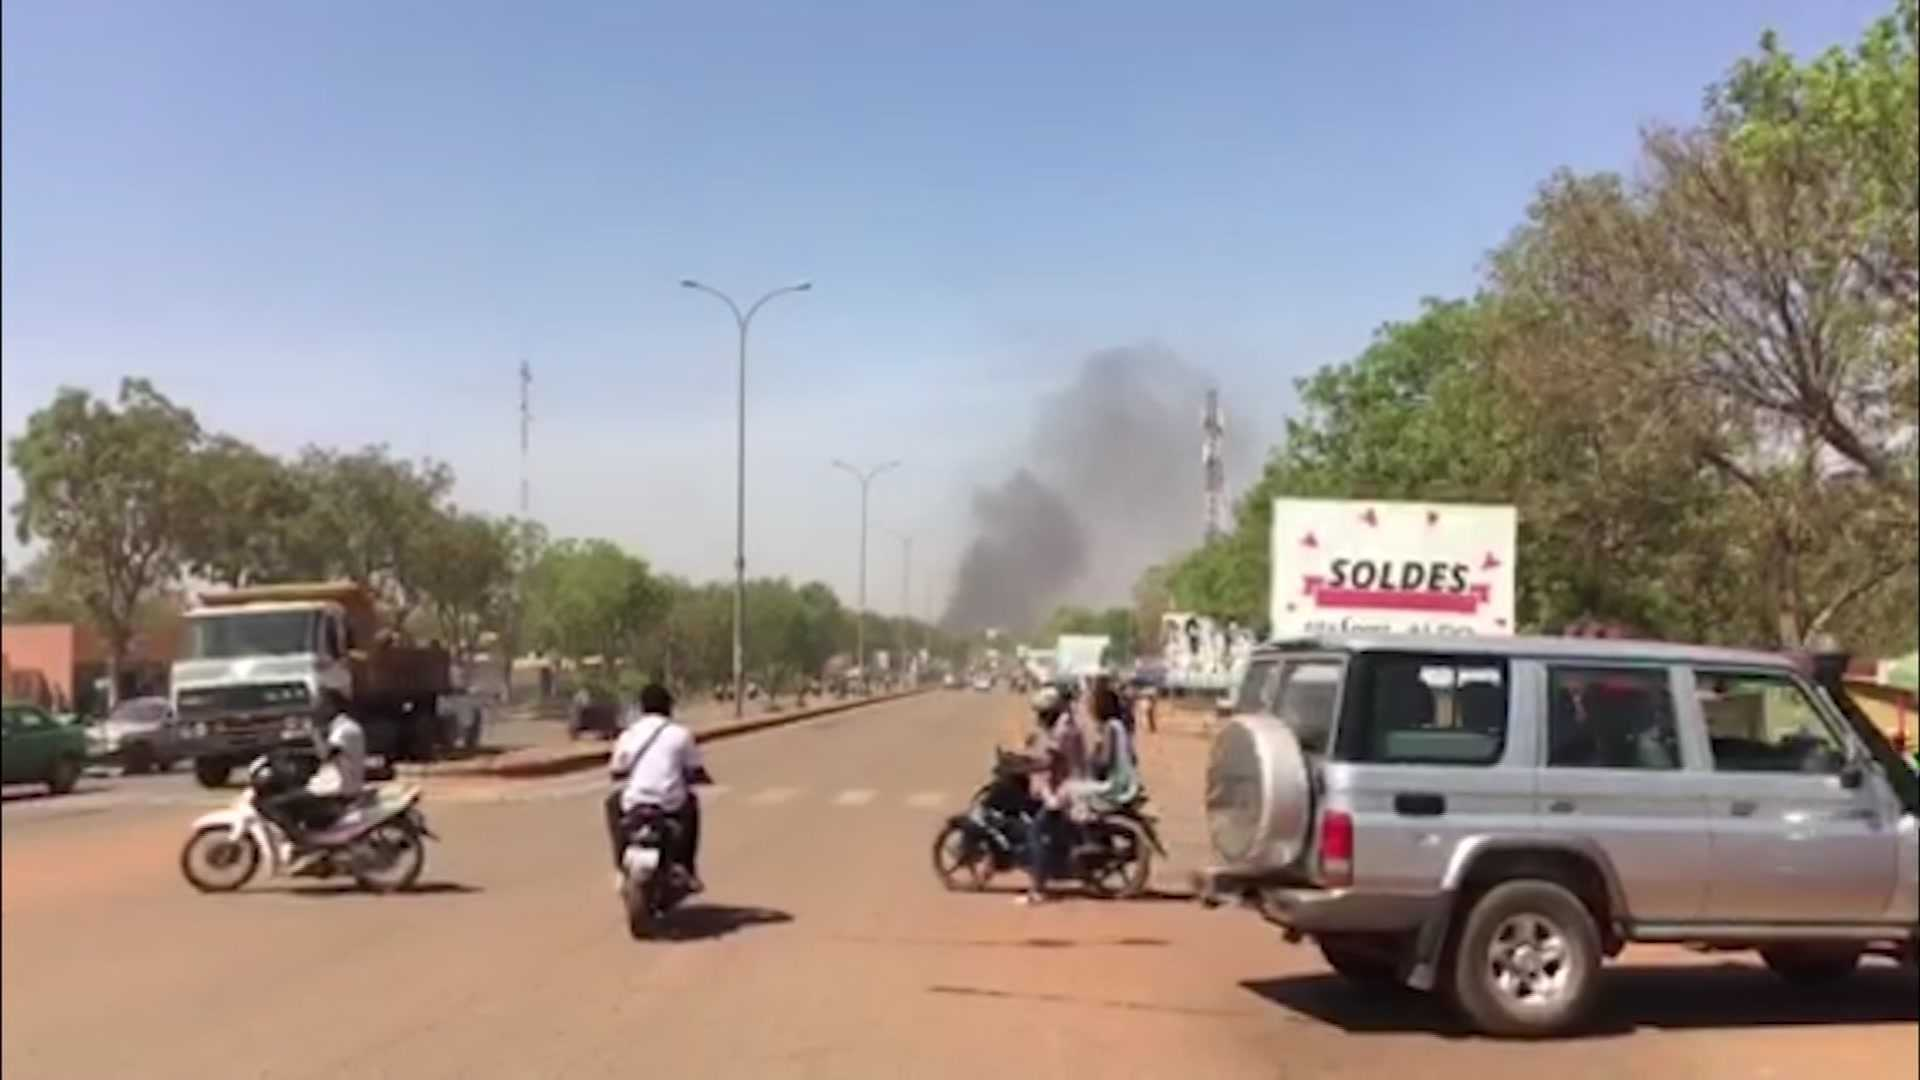 Islamists open fire on passers-by outside French embassy in Burkina Faso